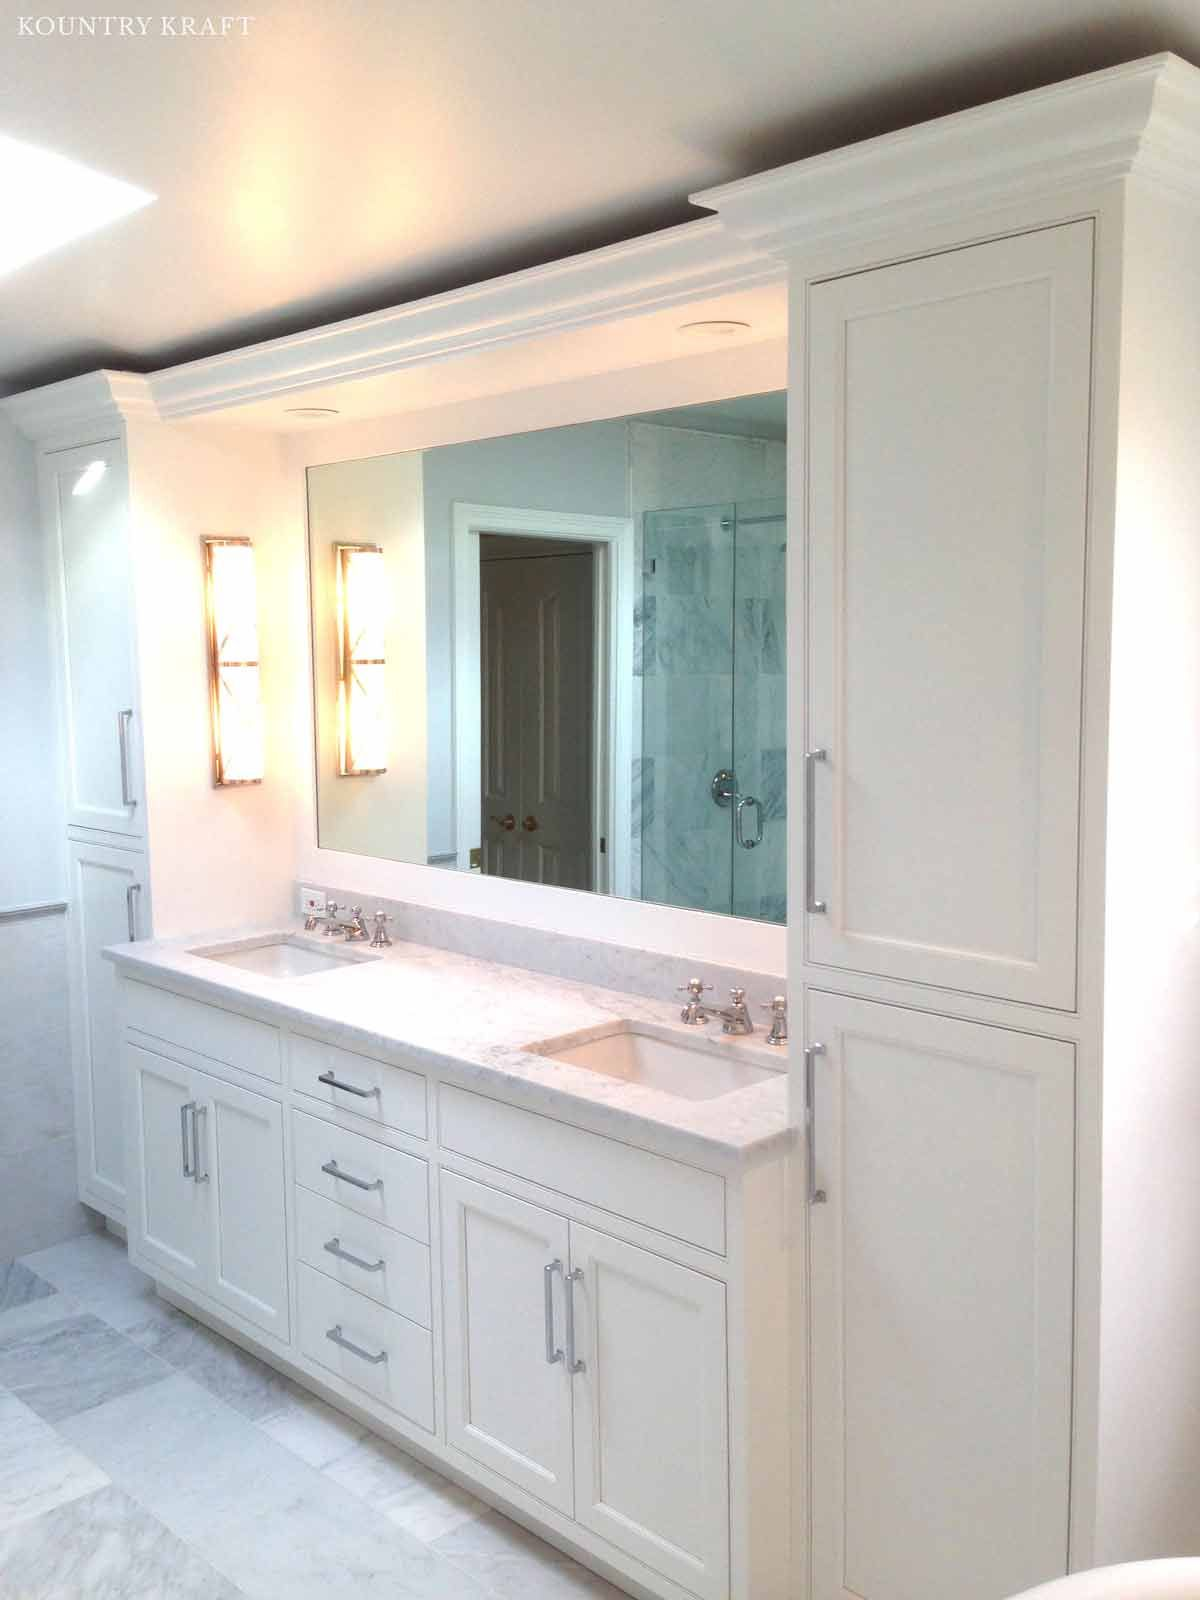 White Custom Cabinetry New Canaan Ct Https Www Kountrykraft Com